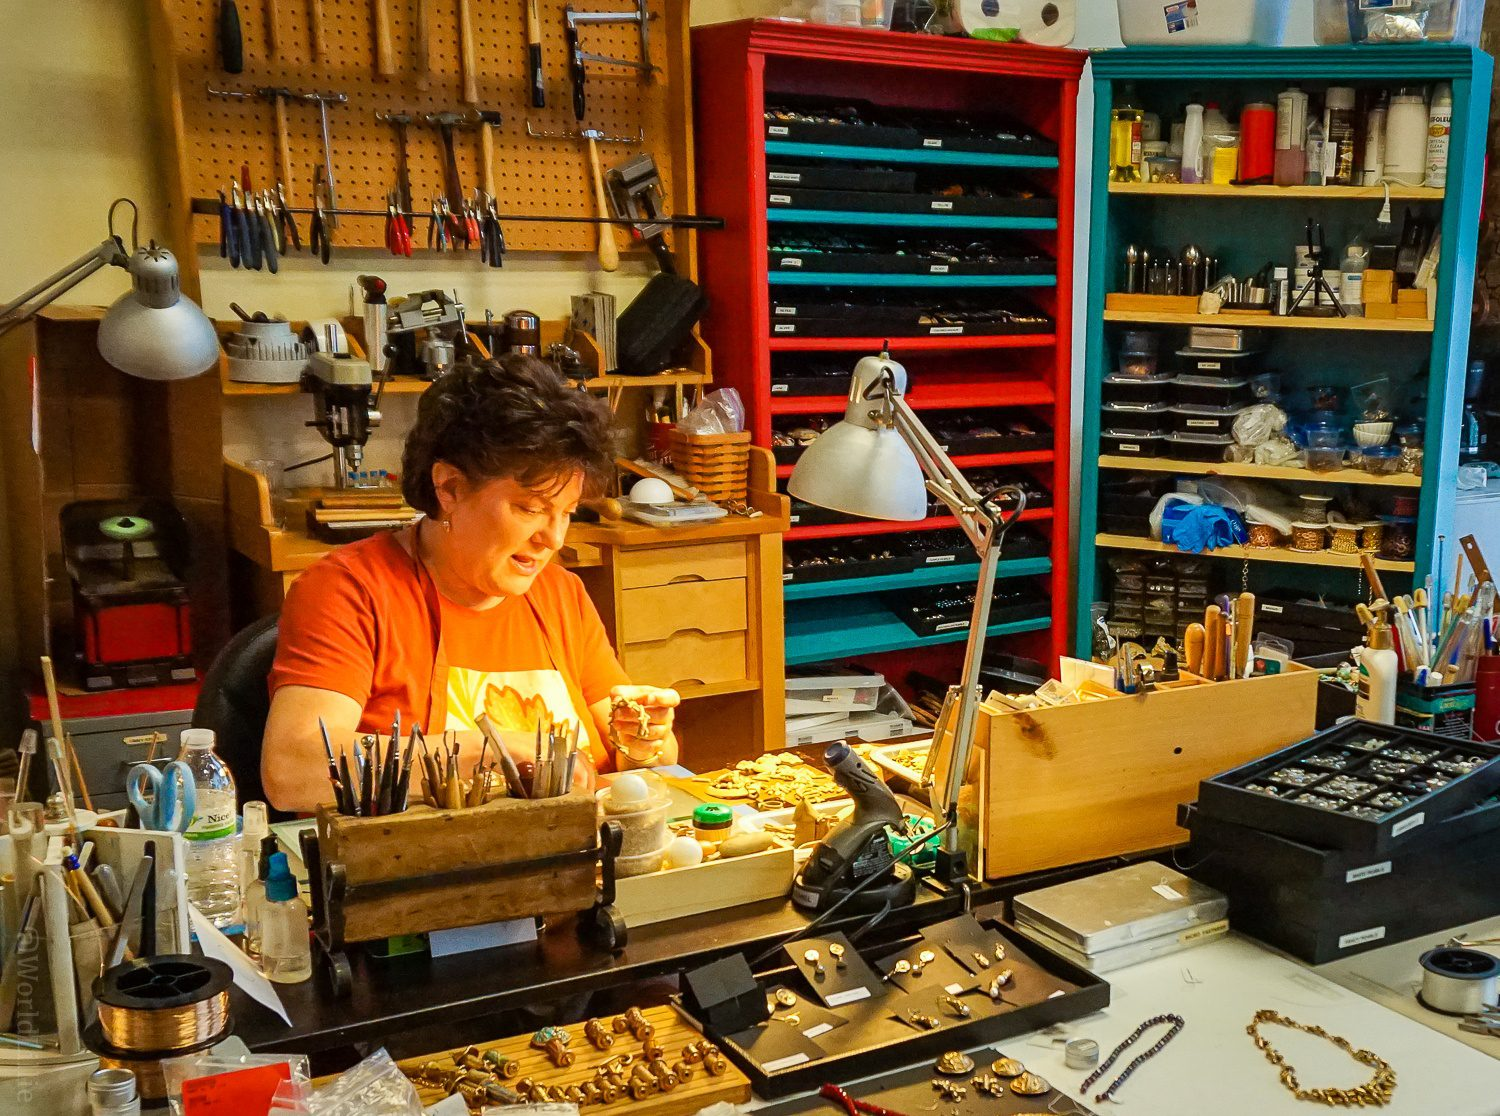 An artist hard at work on metal clay jewelry.